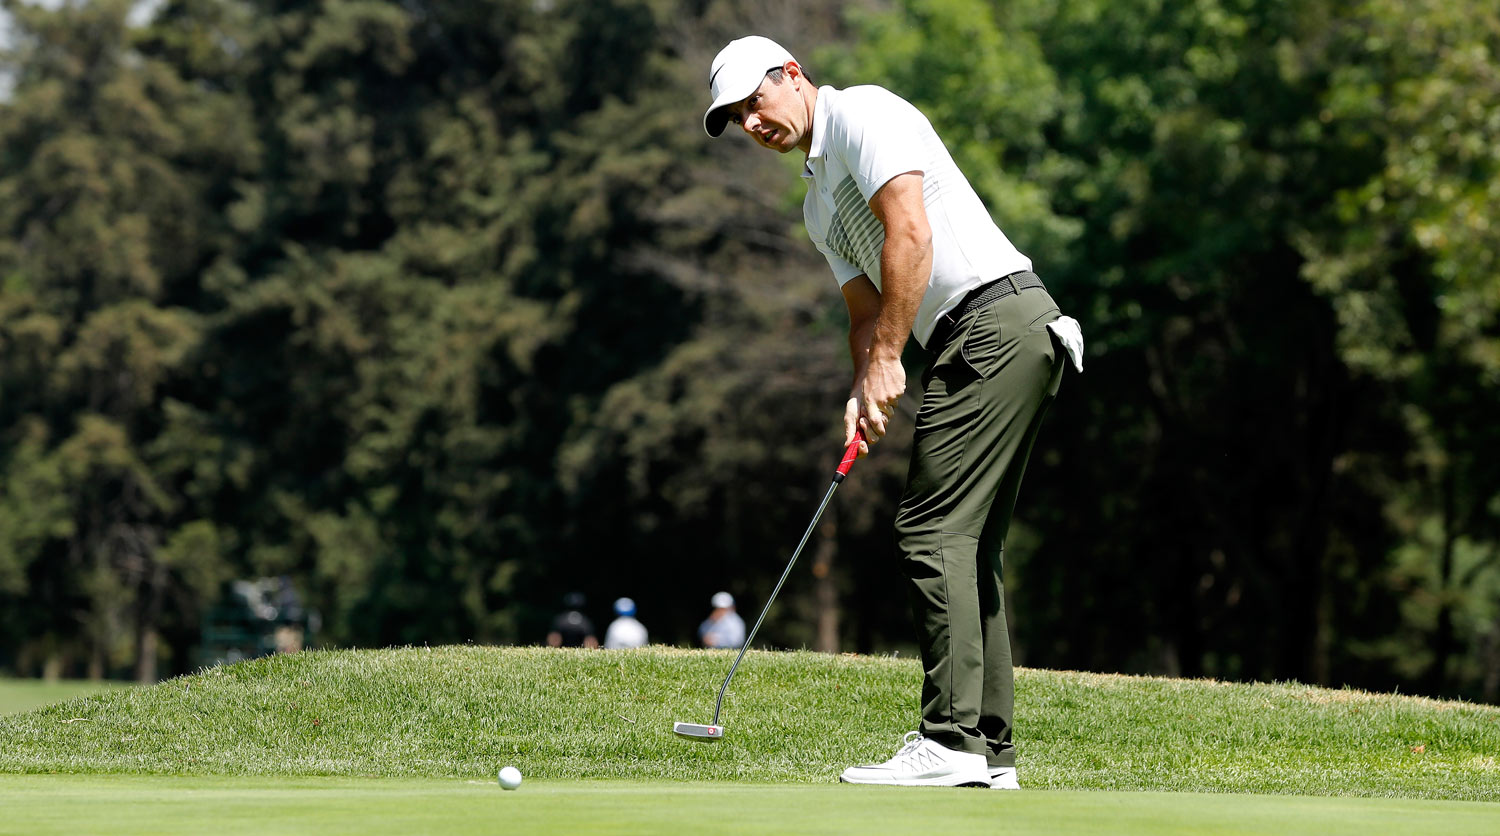 Rory McIlroy putts during the first round of the WGC-Meixco Championship.